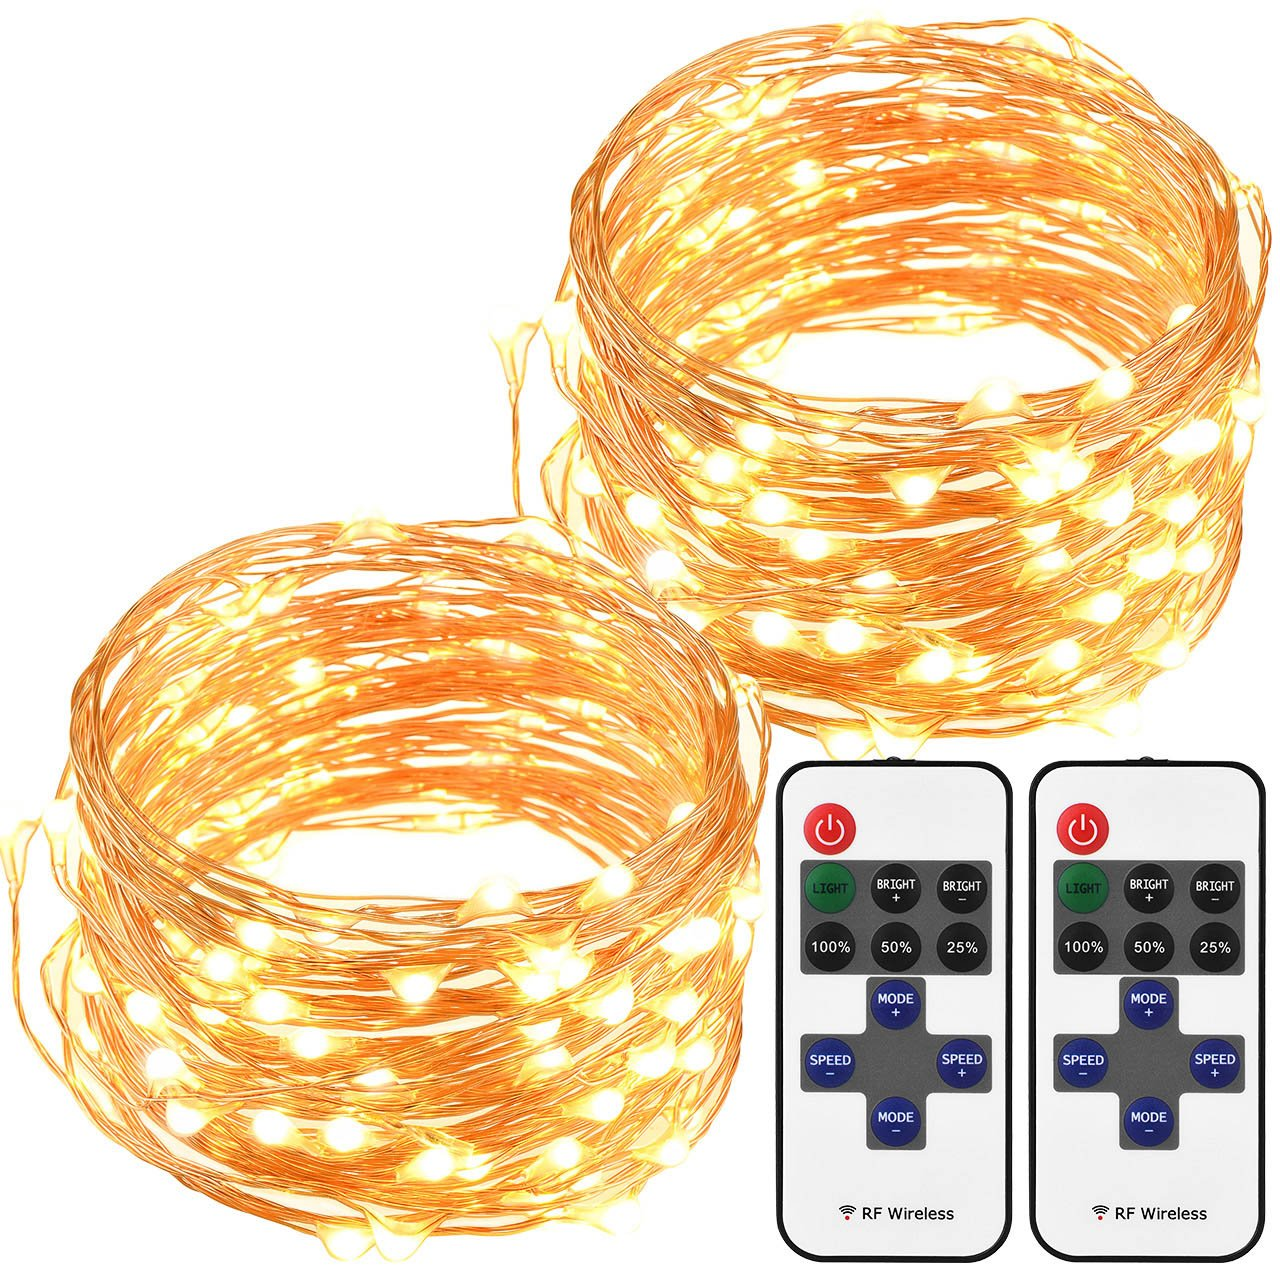 Mpow LED String Lights with Remote Control, 33ft 100LED Waterproof Decorative Lights Dimmable, Copper Wire Lights for Indoor and Outdoor, Bedroom, Patio, Garden, Wedding, Parties (Warm White) Cymas VDCYLE006ABUS